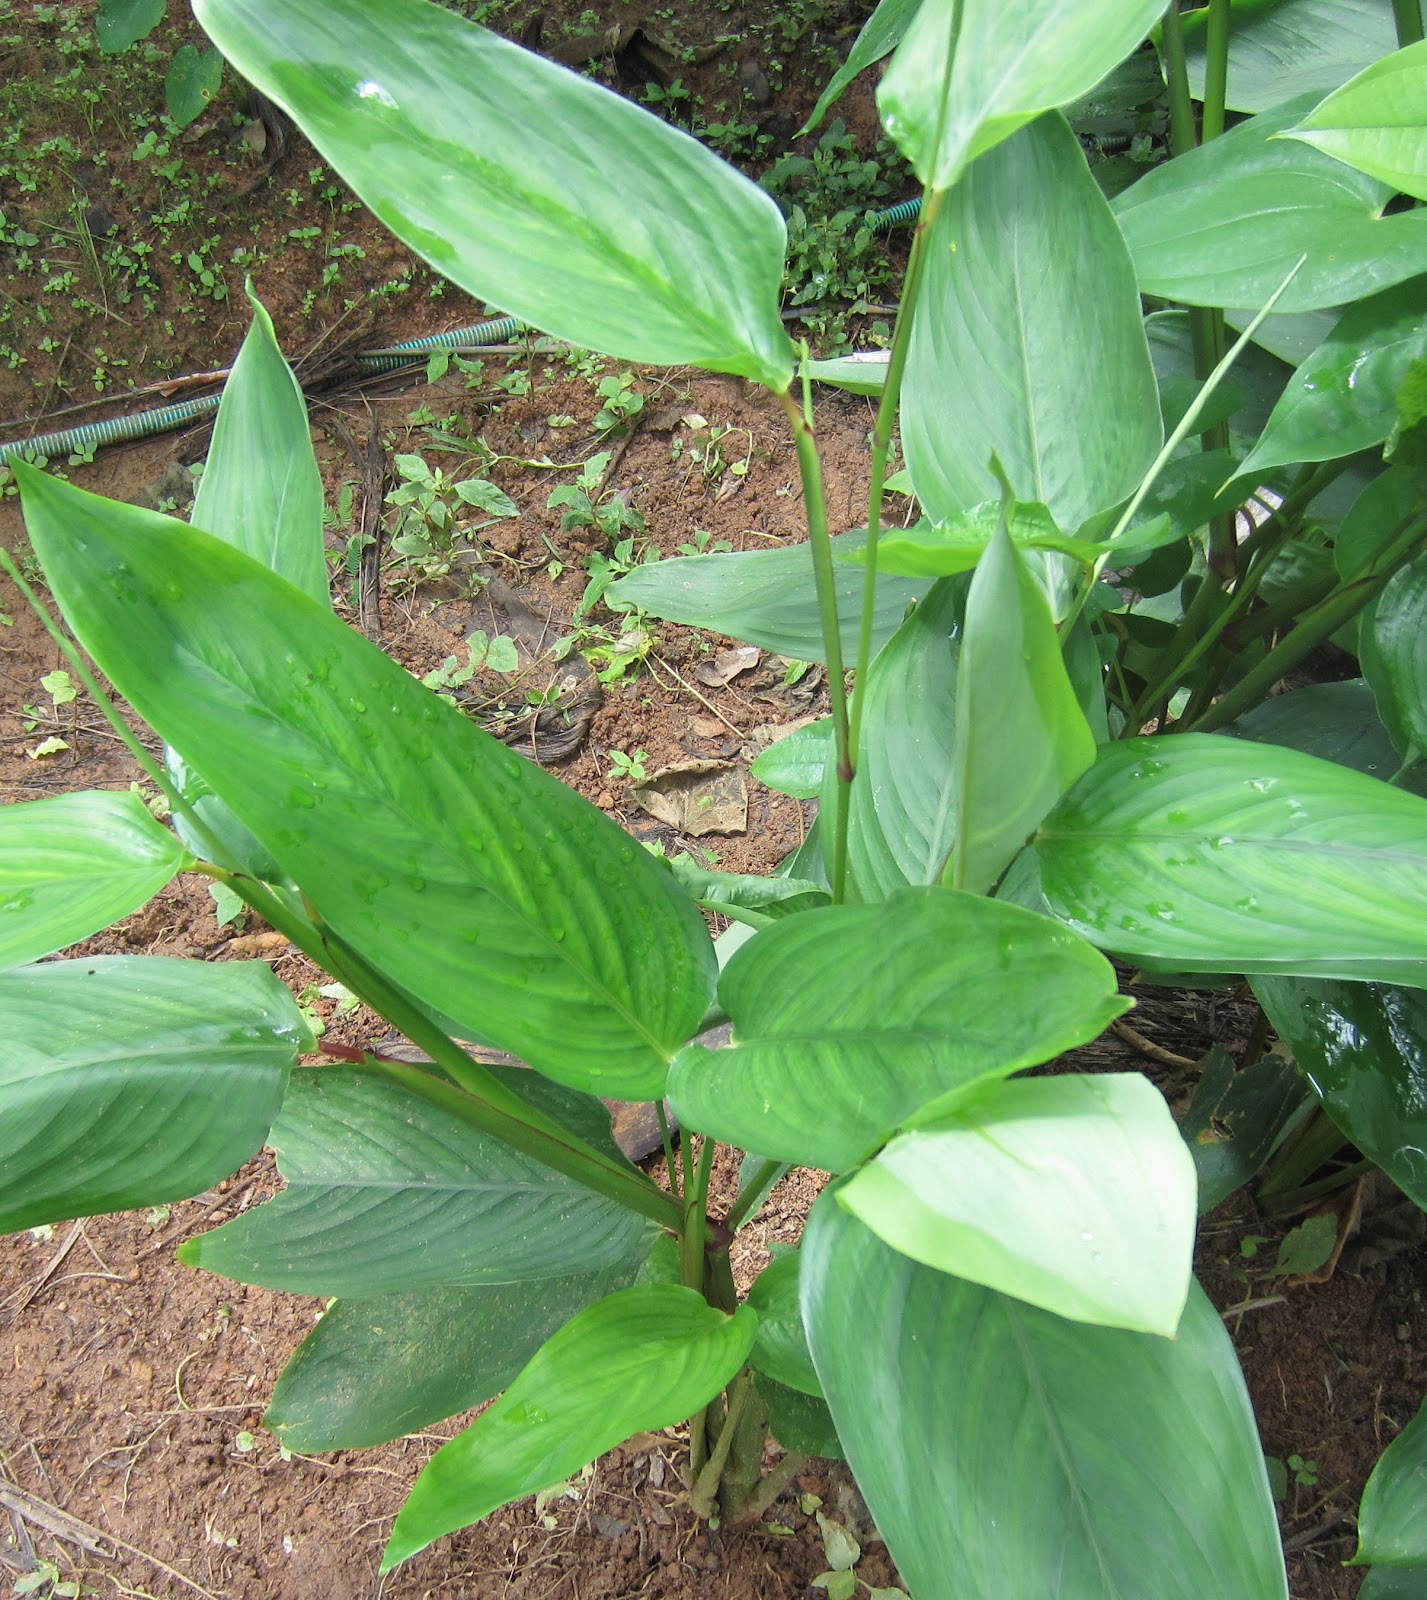 Leaves-of-Arrowroot-plant